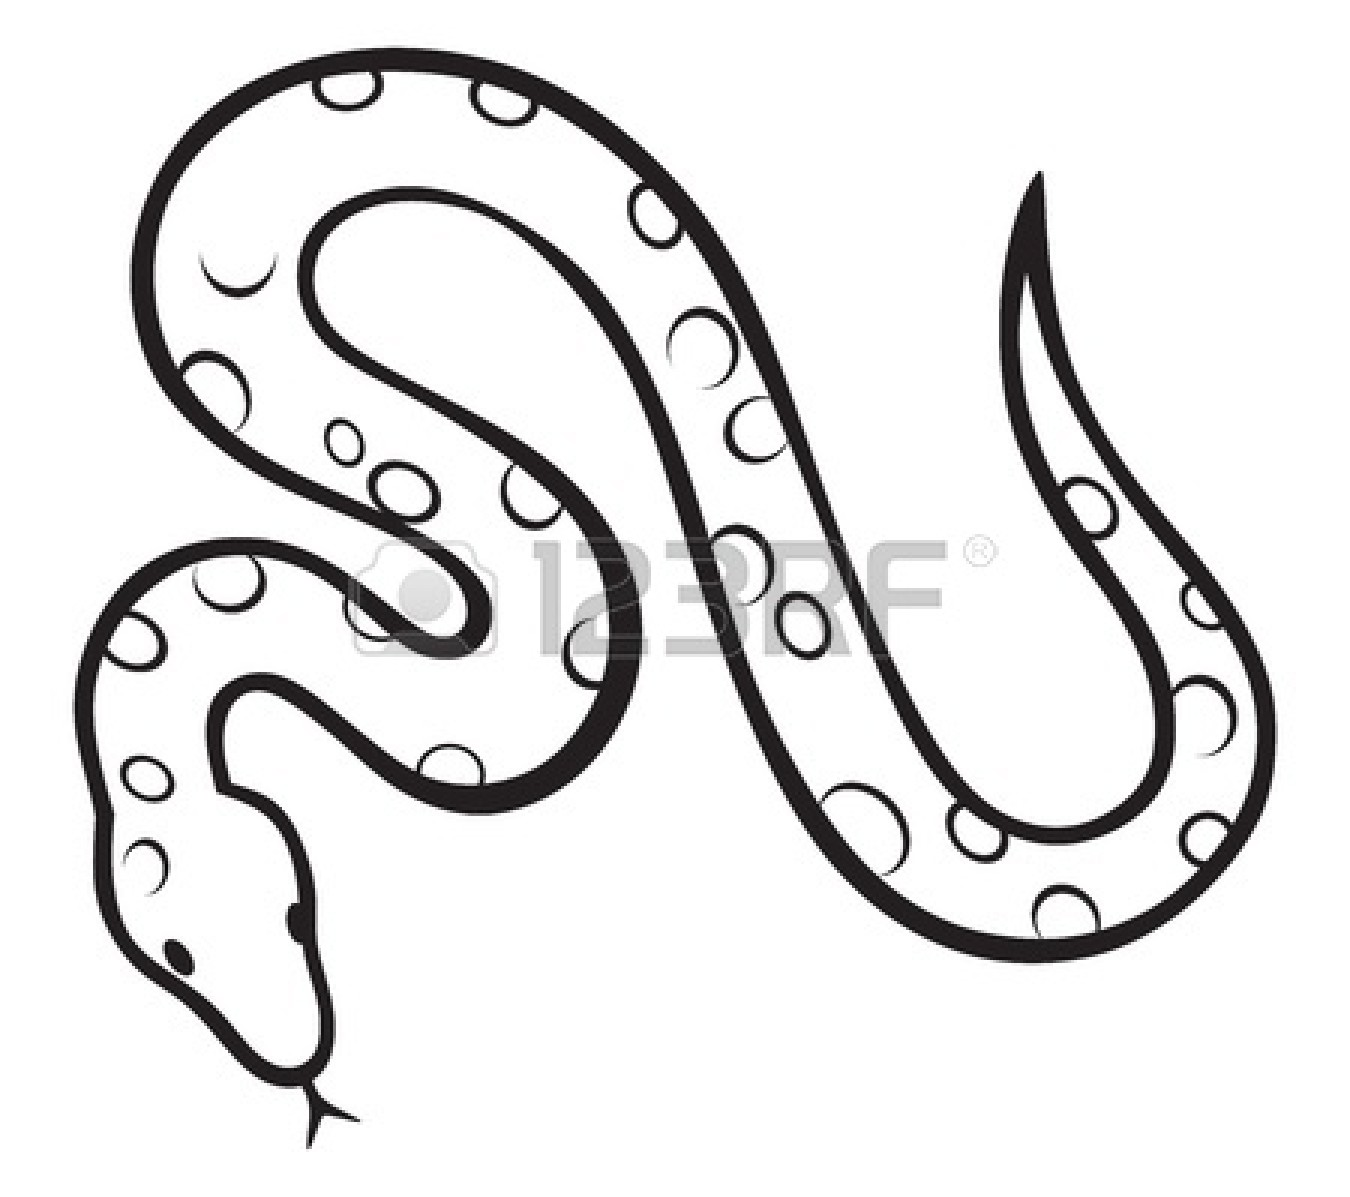 Clipart Of Snake Black And White.